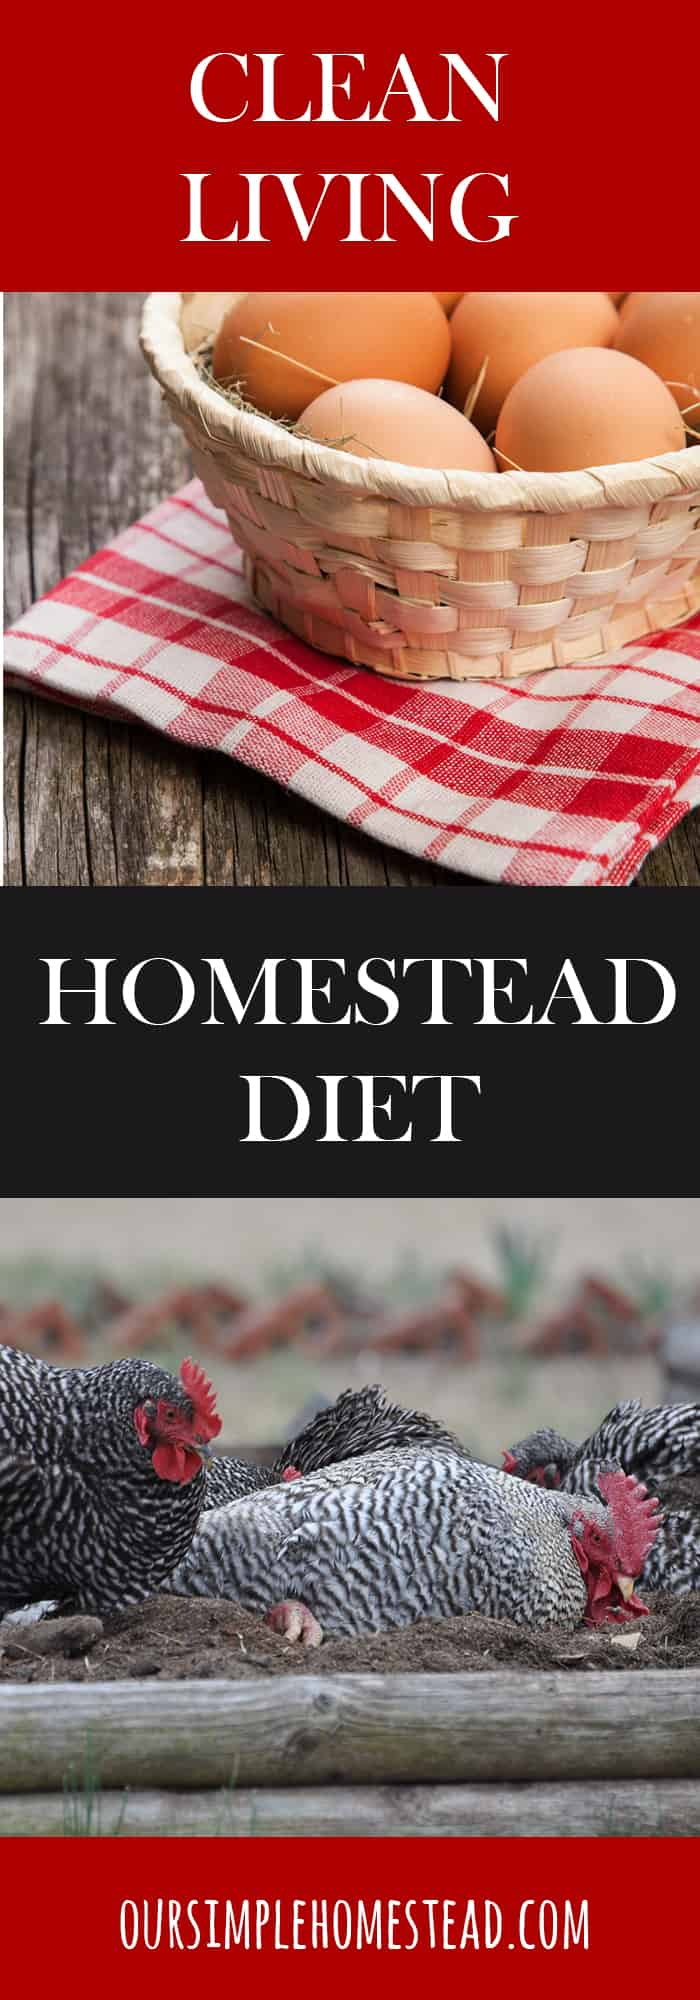 Living Clean - A Homestead Diet